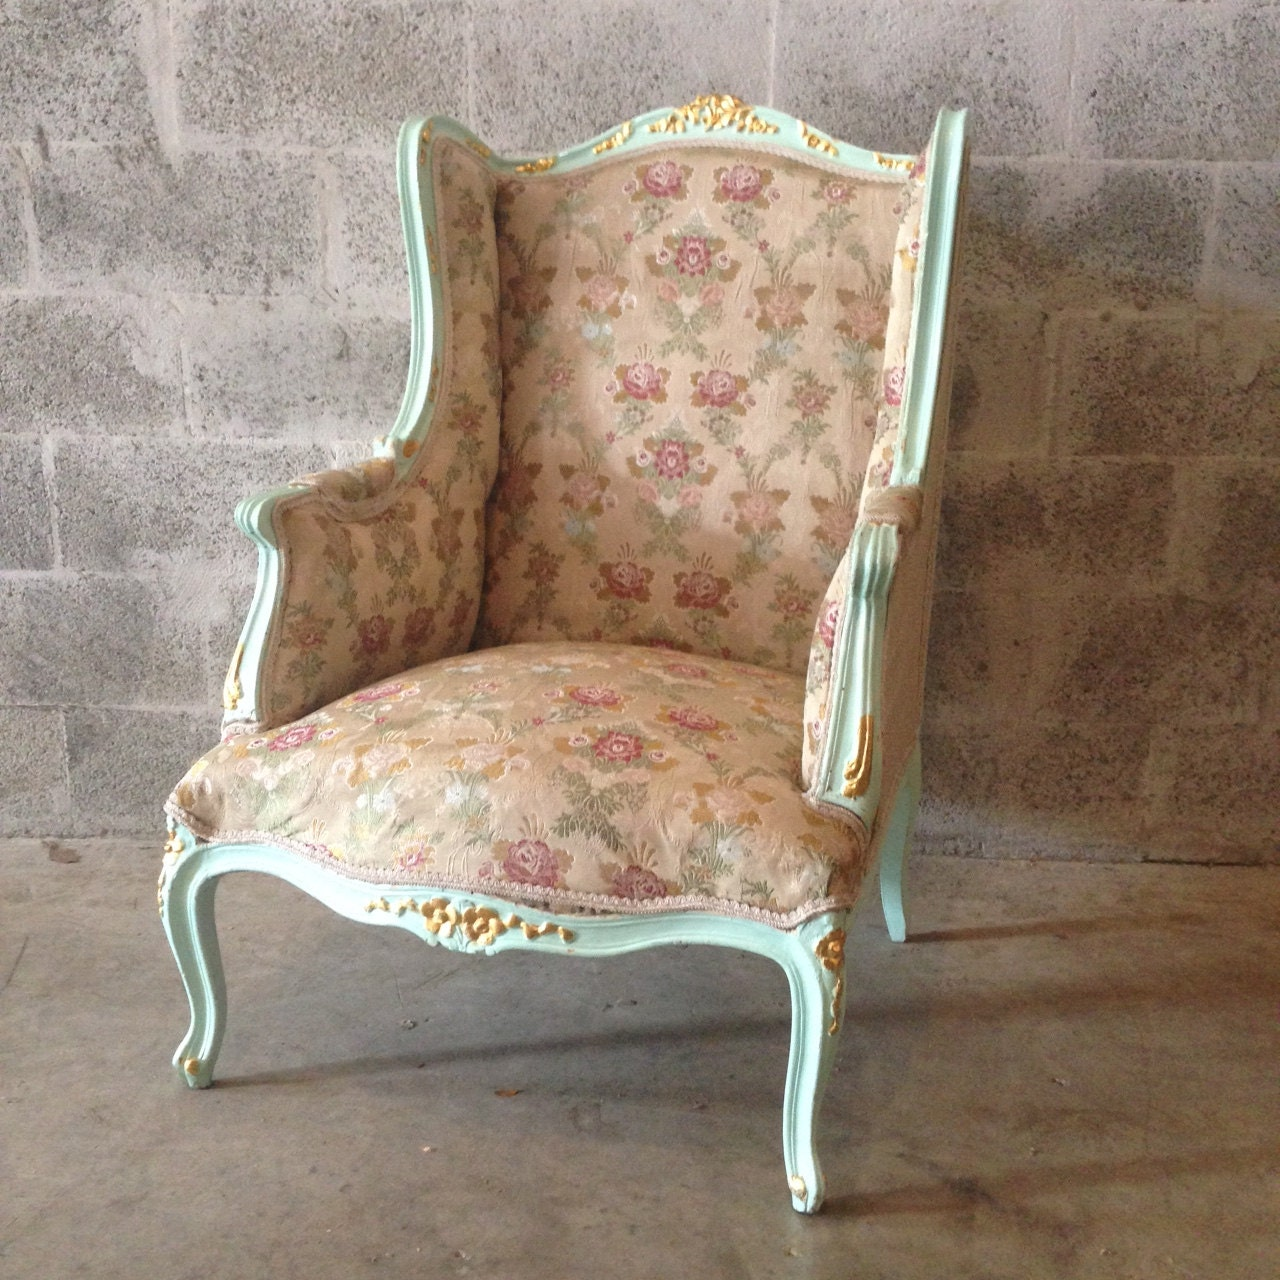 Antique French Louis XVI Chairs *1 Available* Fauteuils Wingback Rococo  Baroque Green Minty Frame Gold Leaf Accent Gild Shabby - Antique French Louis XVI Chairs *1 Available* Fauteuils Wingback